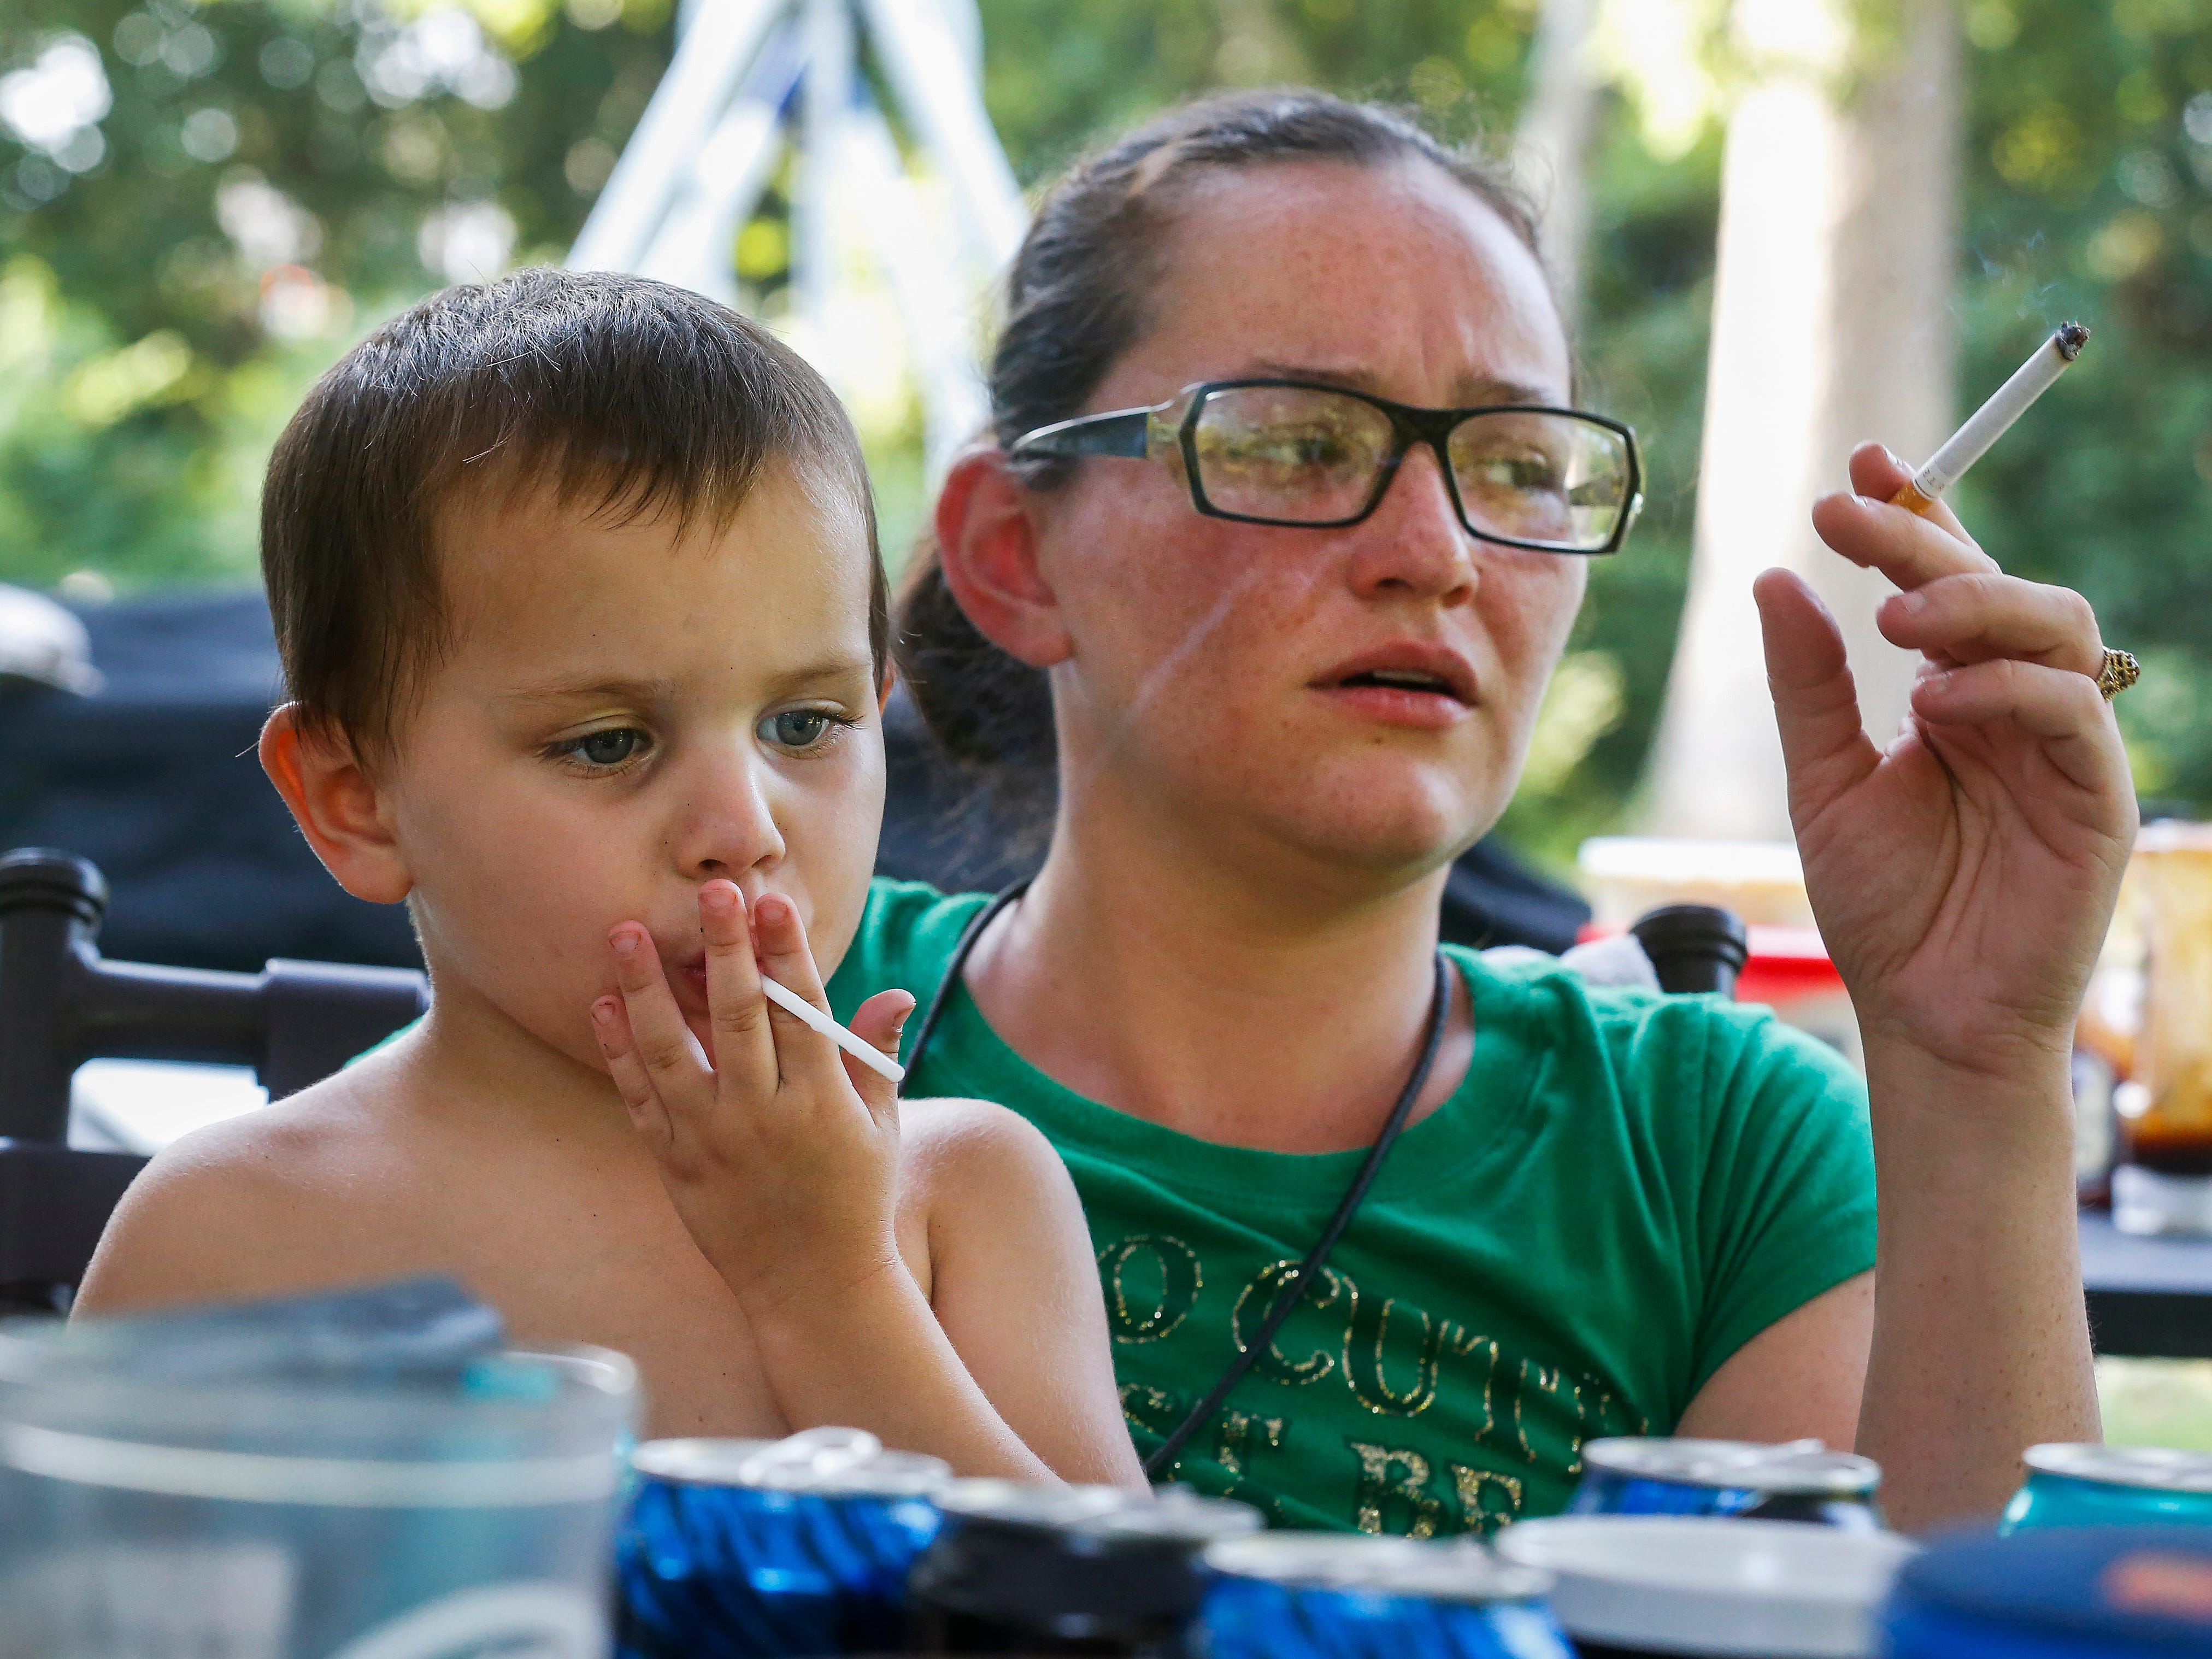 Gabriel Norris, 3, uses the stick from a sucker to imitate his mom Amanda Norris smoking a cigarette while the family barbecued outside of their room at the extended stay hotel they live in in Branson on Friday, July 20, 2018.